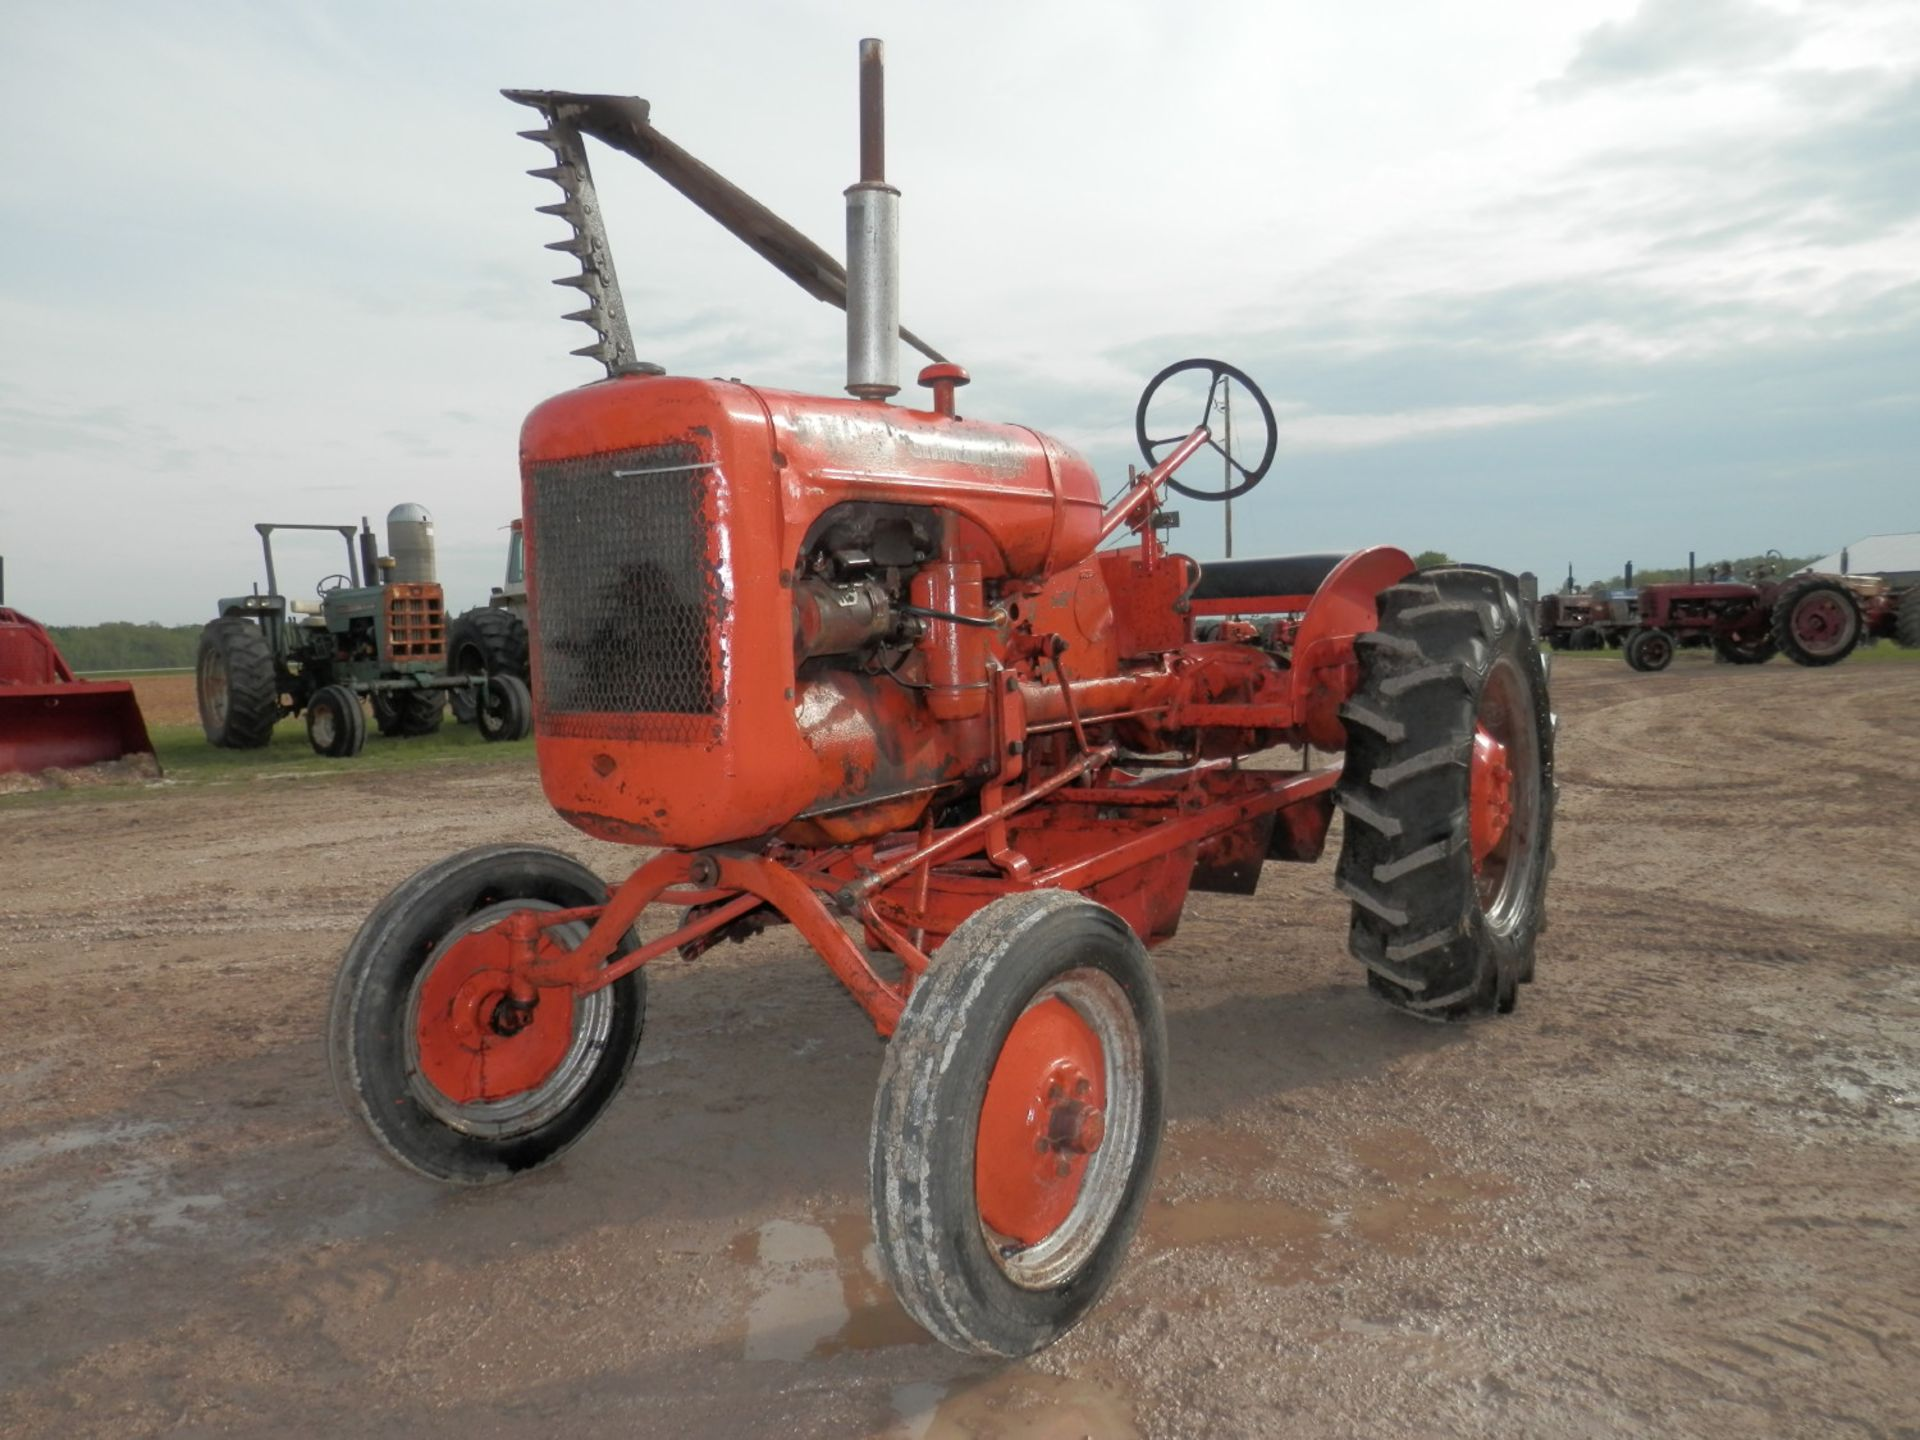 ALLIS CHALMERS B TRACTOR w/6' SICKLE MOWER - Image 3 of 9